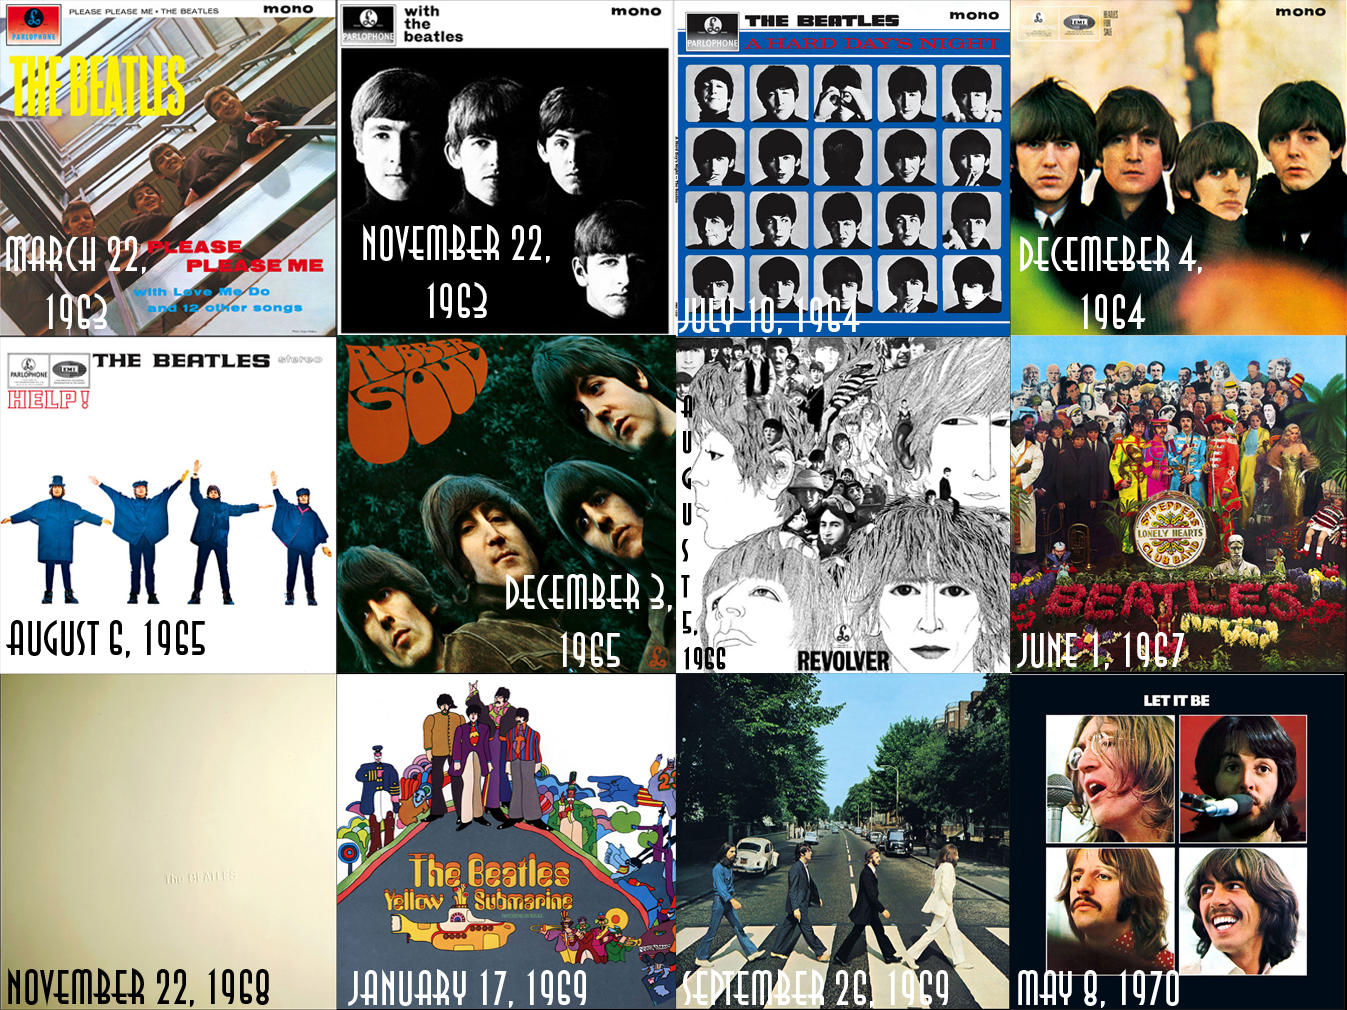 Syd Barrett Photo Gallery also Iconic Rock Album Covers moreover Syd Barrett Photo Gallery further The Beatles Collage Taylan Soyturk in addition Iconic Rock Album Covers. on album art beatles abbey road